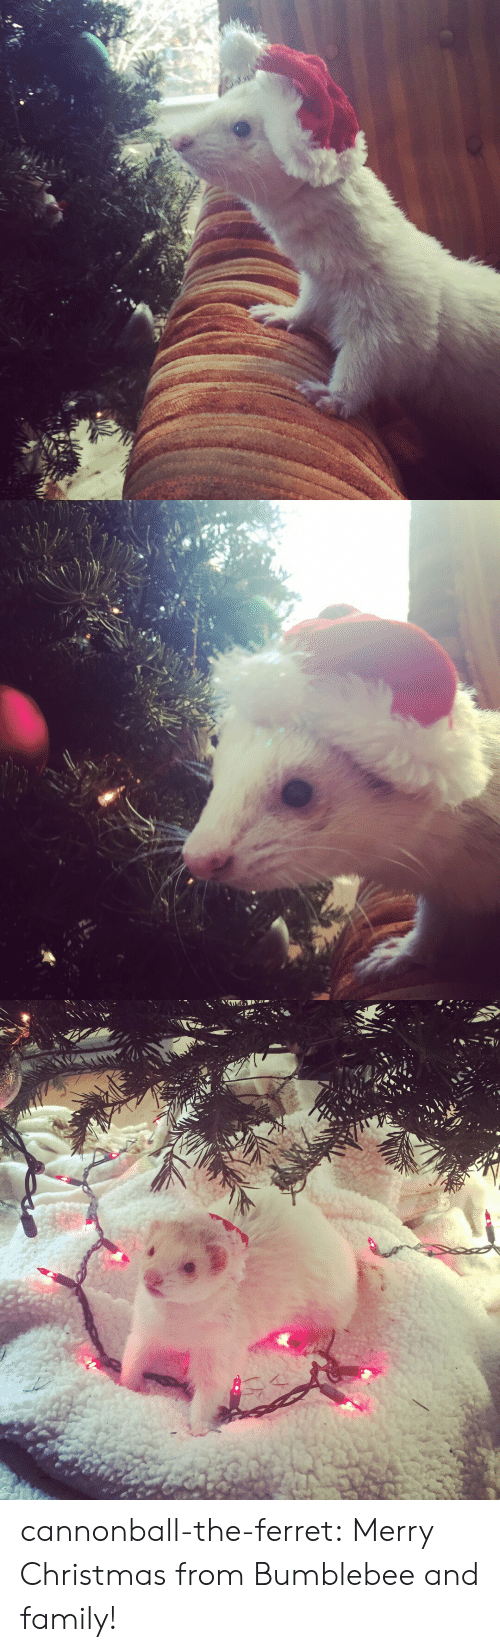 bumblebee: cannonball-the-ferret:  Merry Christmas from Bumblebee and family!